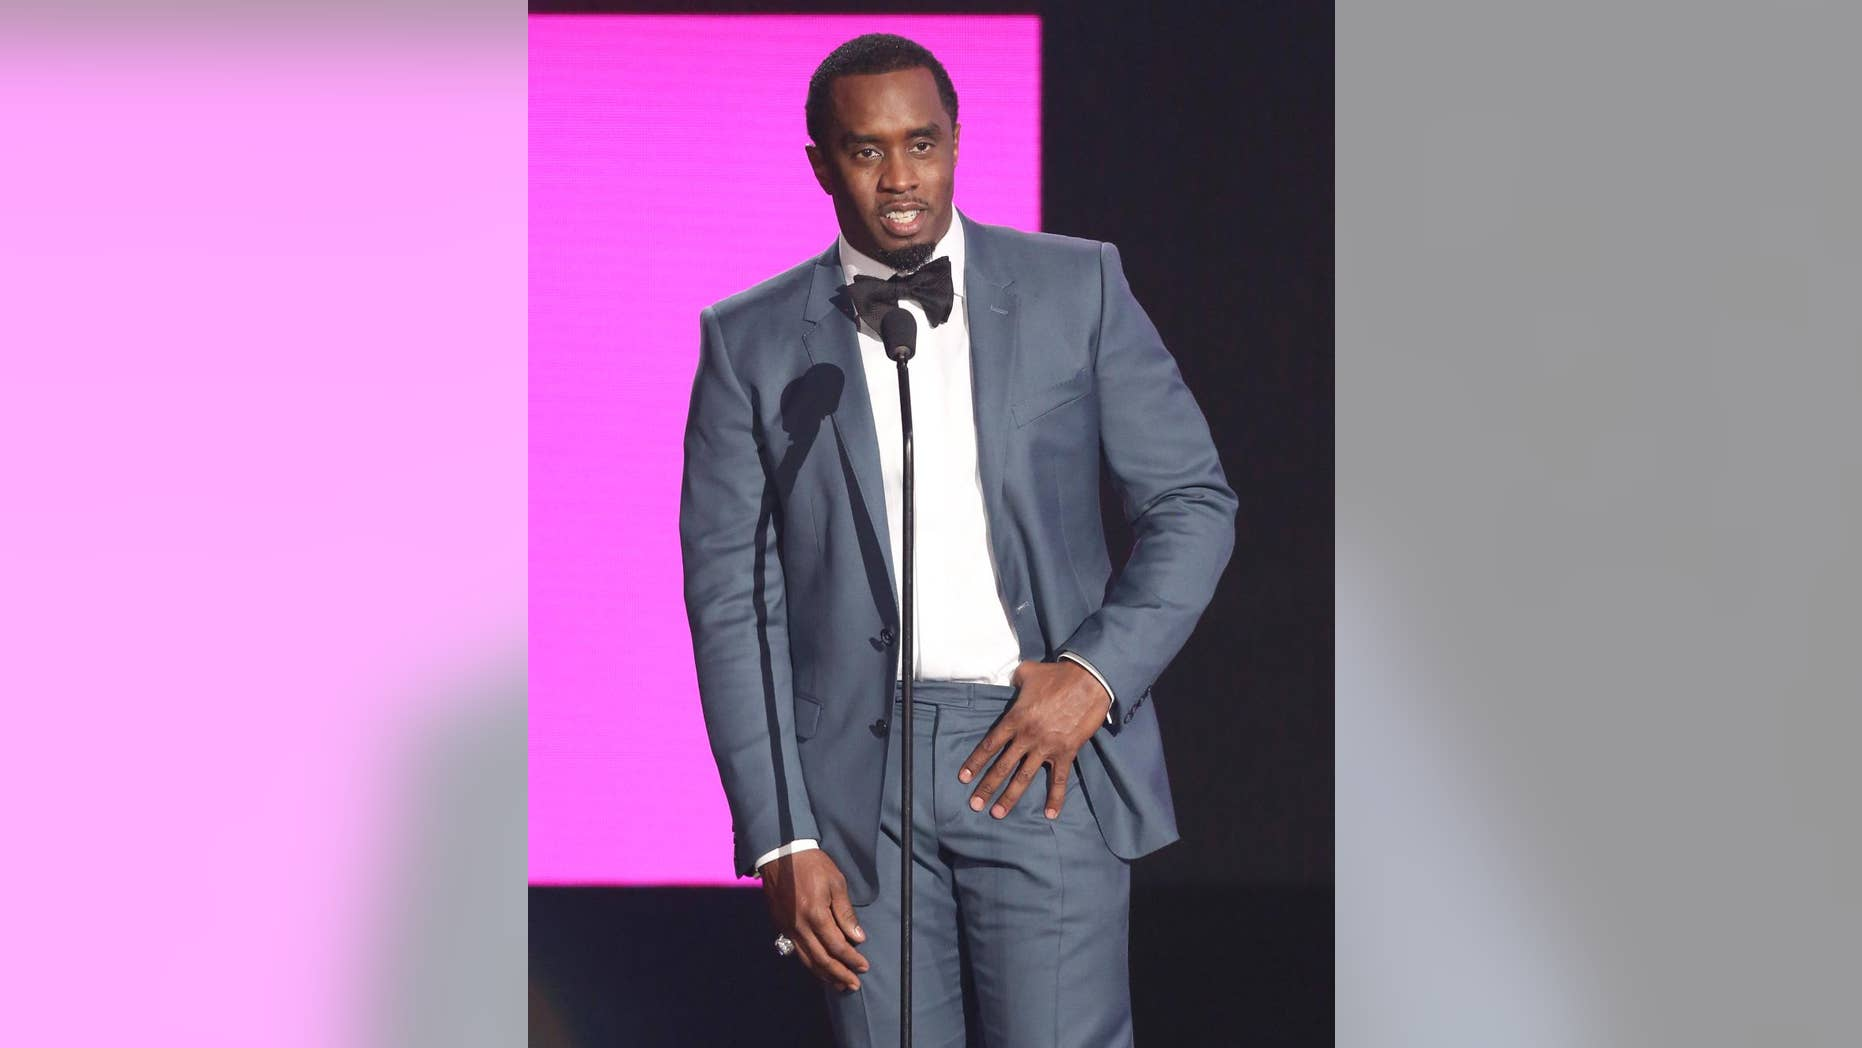 """FILE - In this Nov. 22, 2015, file photo, Sean """"Diddy"""" Combs presents the award for best collaboration of the year at the American Music Awards in Los Angeles. Combs, the founder of Capital Preparatory Harlem Charter School, announced Monday, March 28, 2016, that the school will open in the fall of 2016. (Photo by Matt Sayles/Invision/AP, File)"""